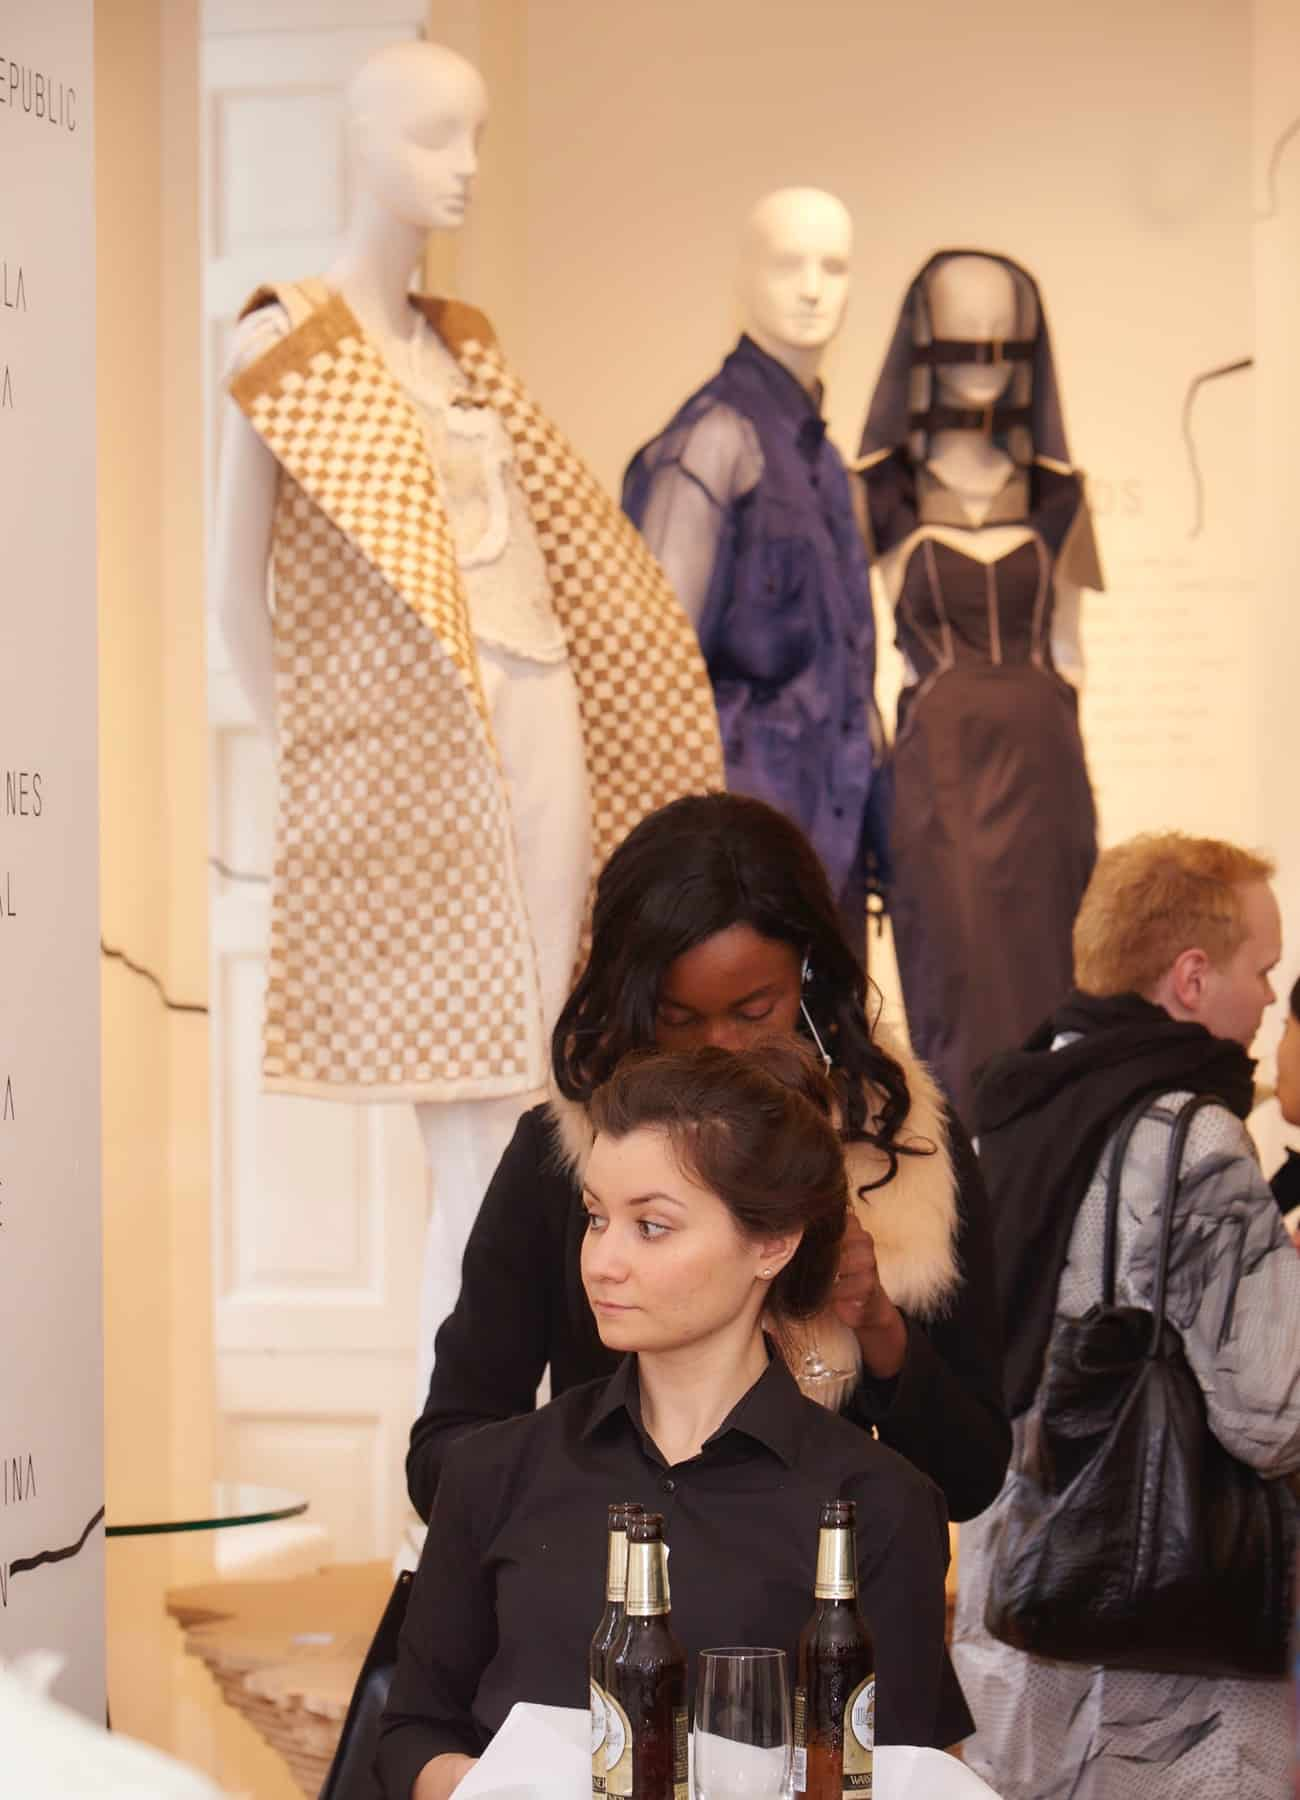 Aloof mannequins ifs16 curator award 2016